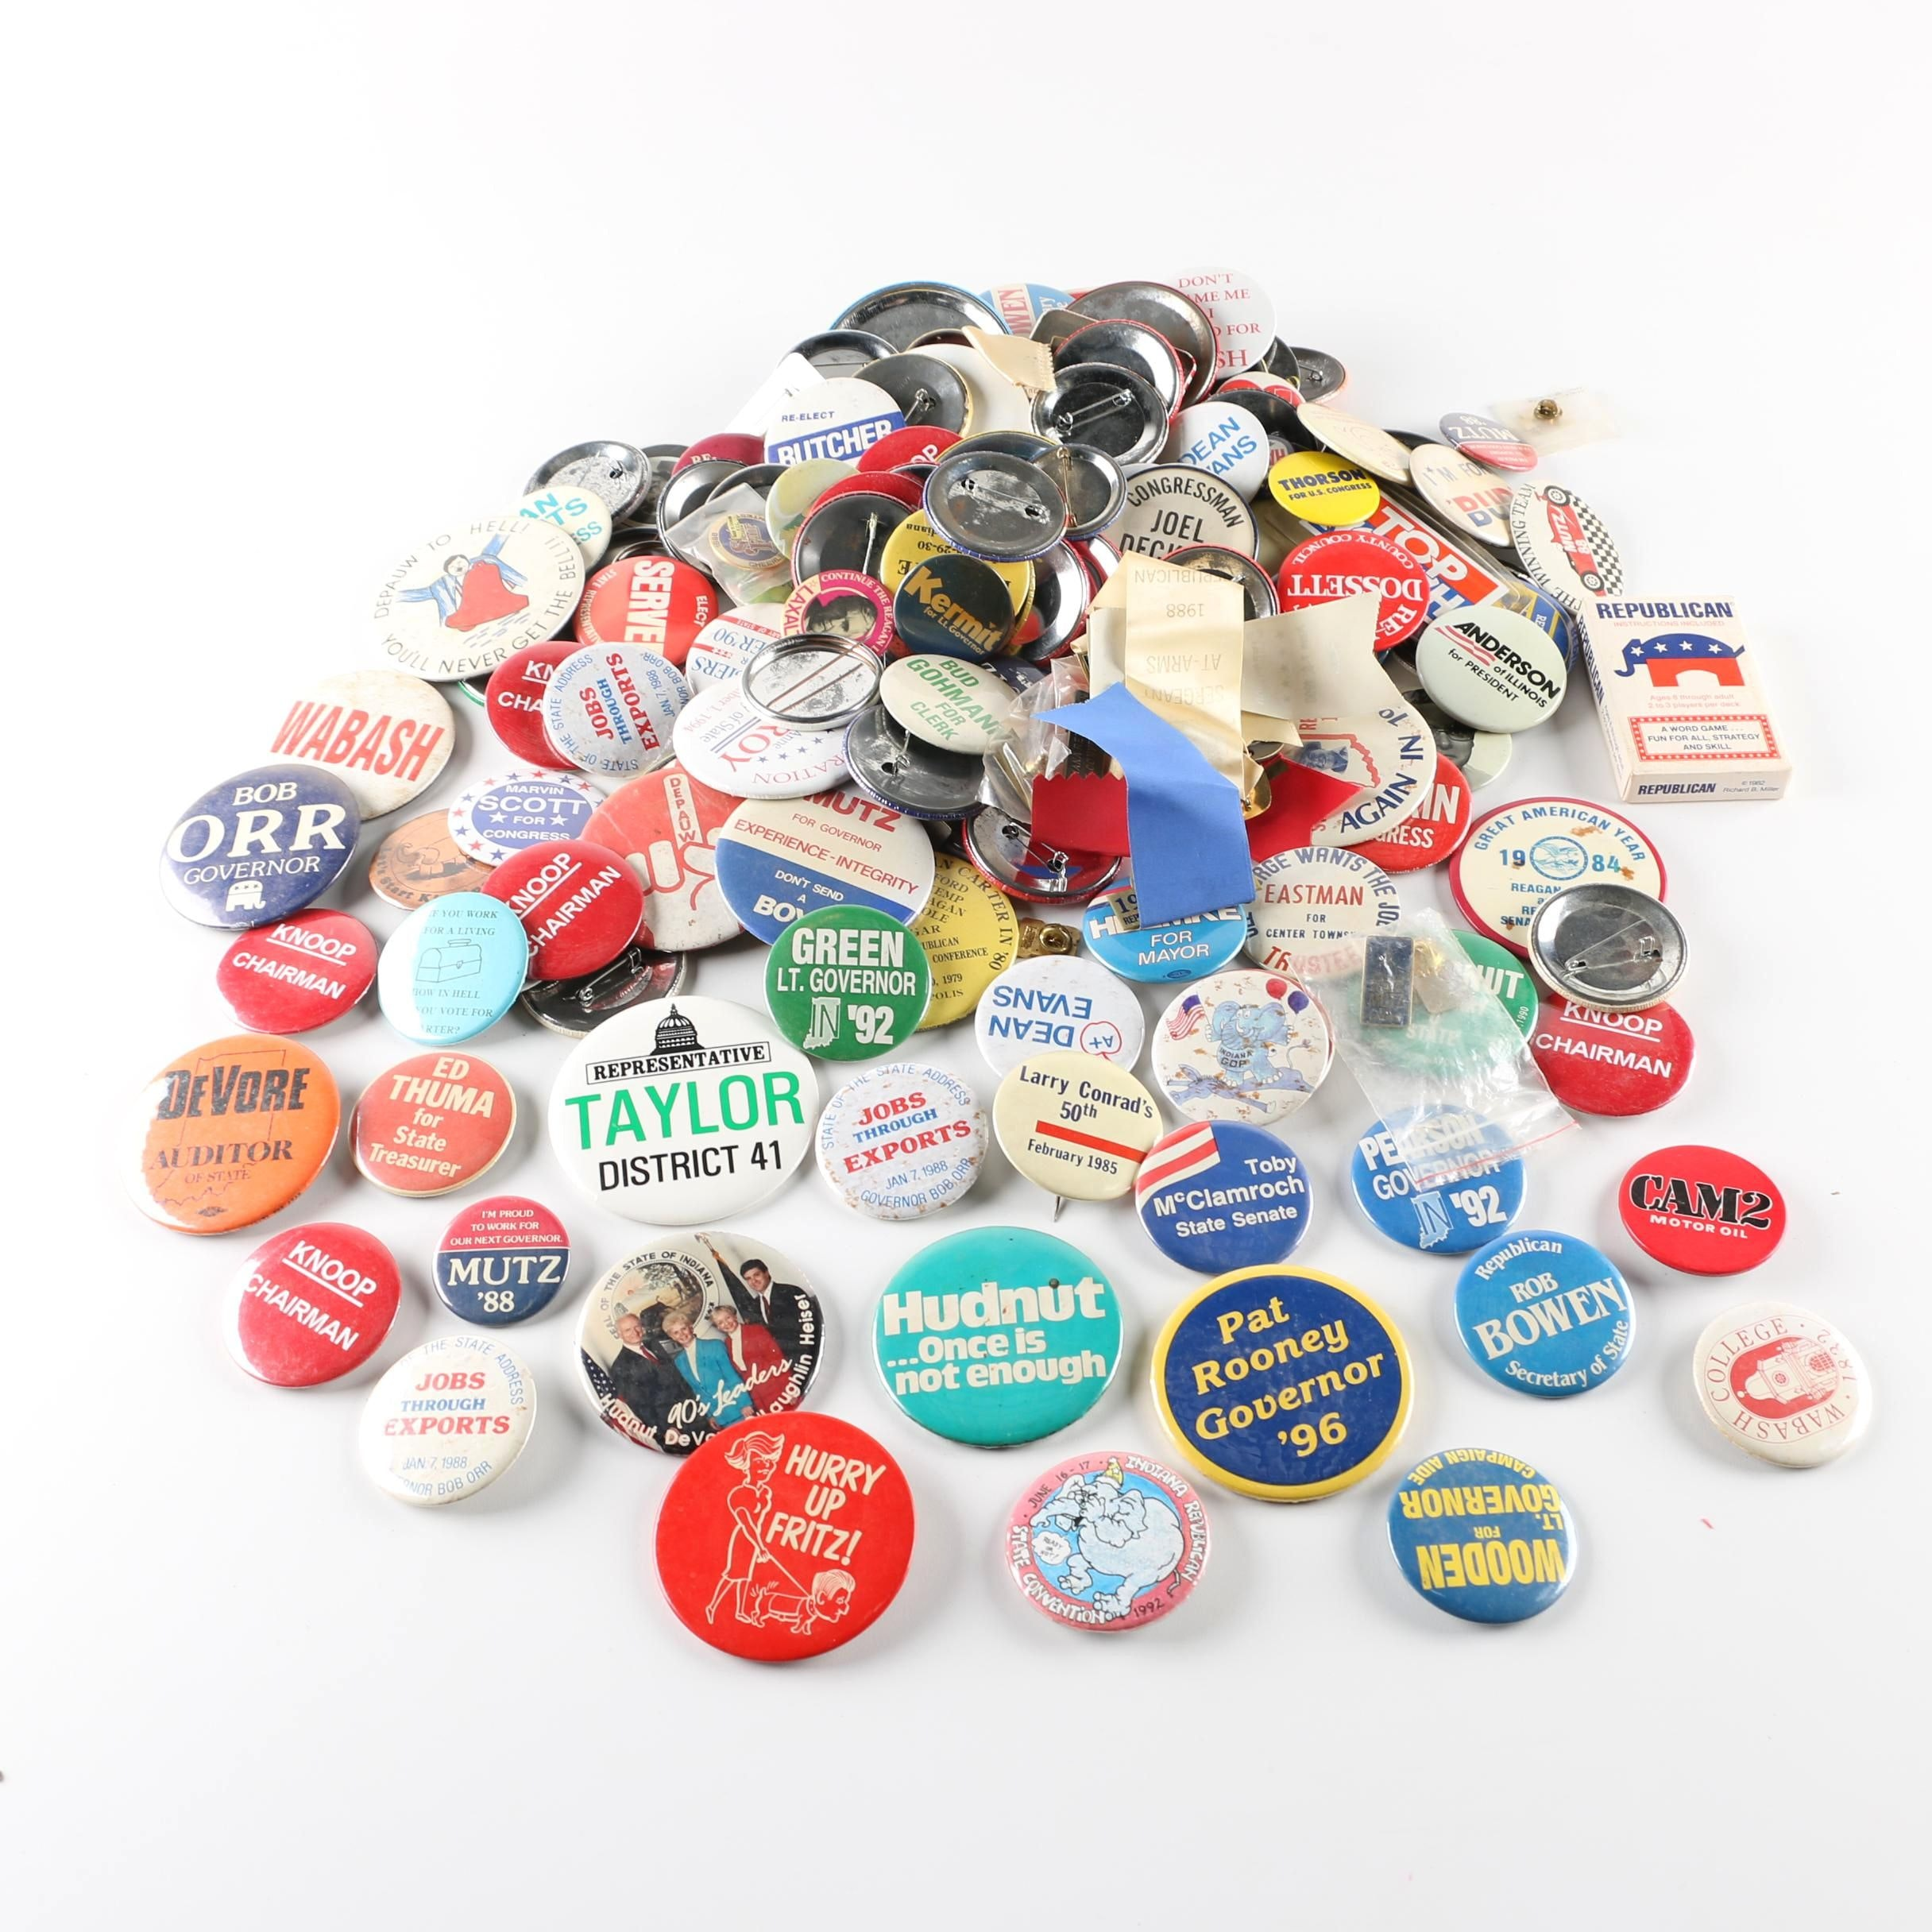 Assortment of Campaign and Other Buttons